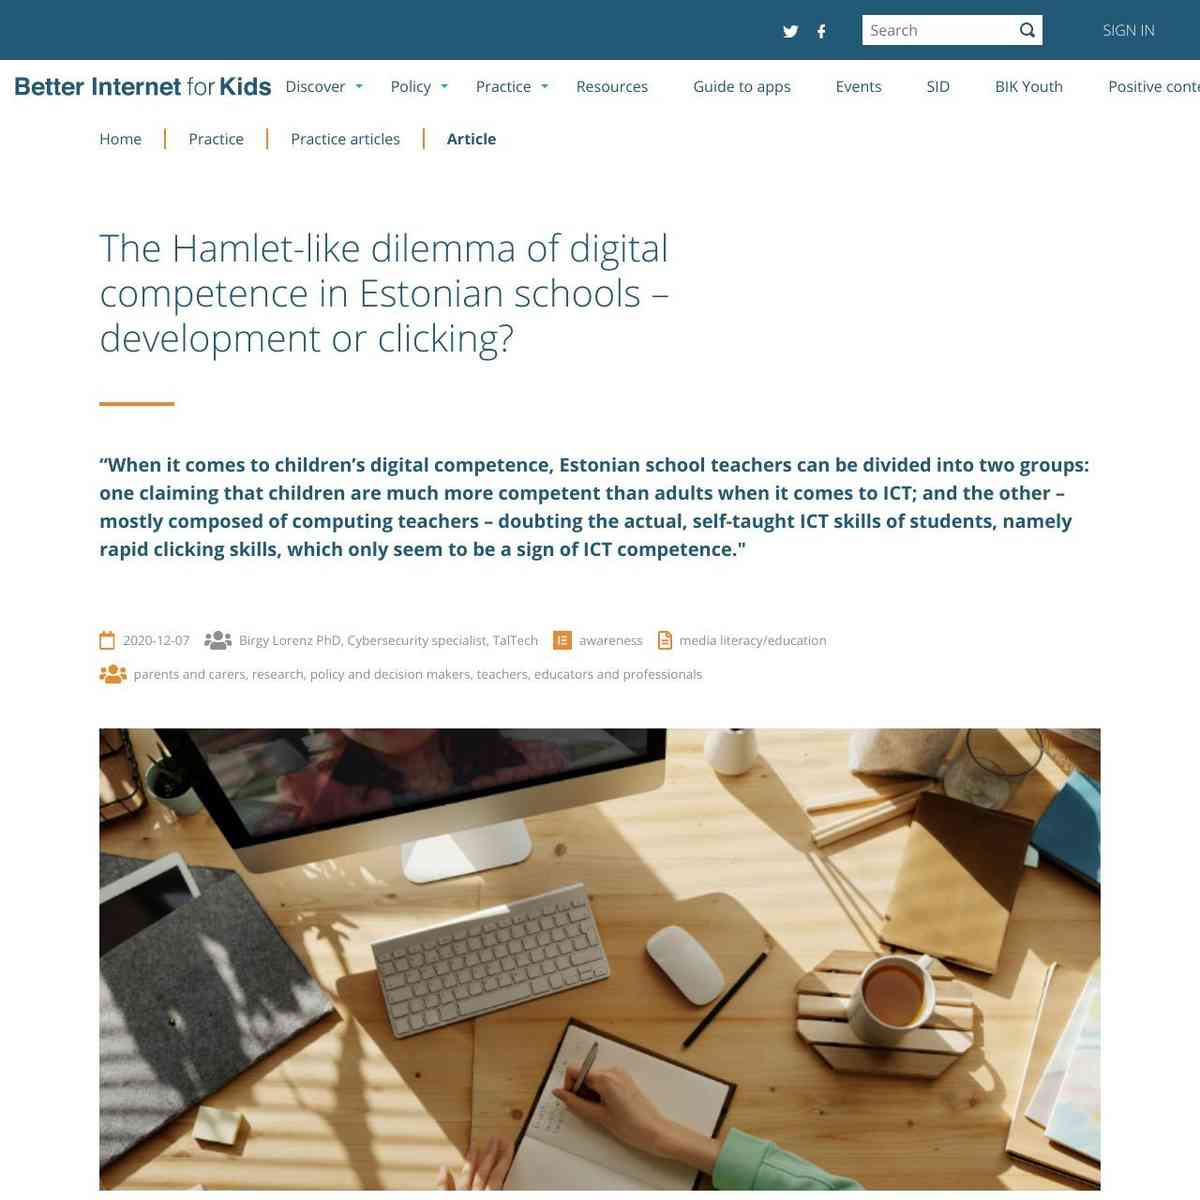 The Hamlet-like dilemma of digital competence in Estonian schools – development or clicking?